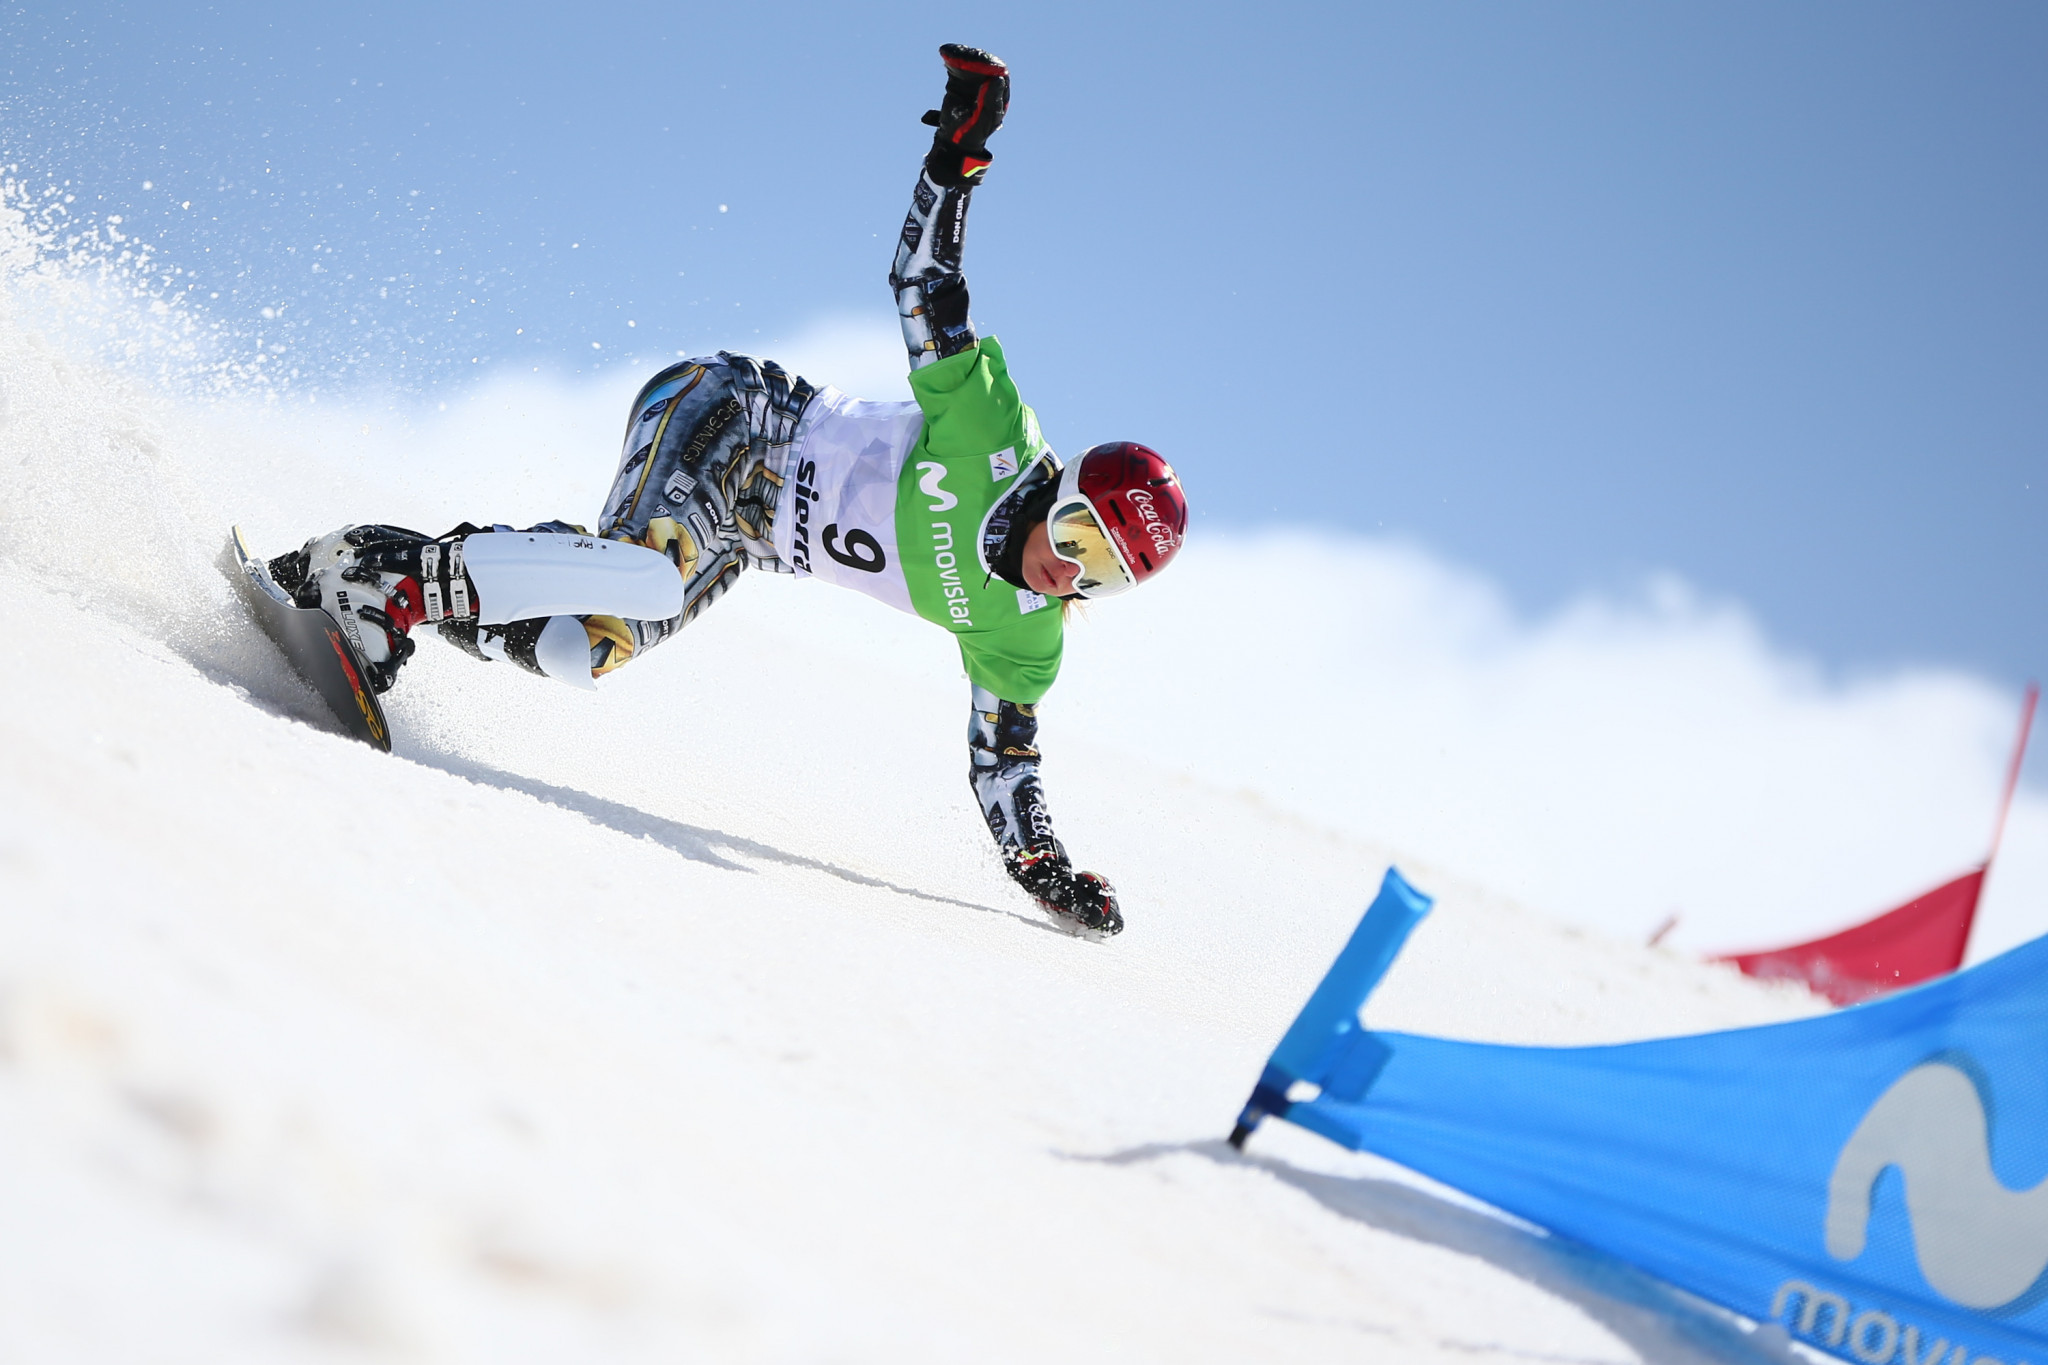 Bad Gastein set to host FIS Snowboard World Cup for 18th consecutive year